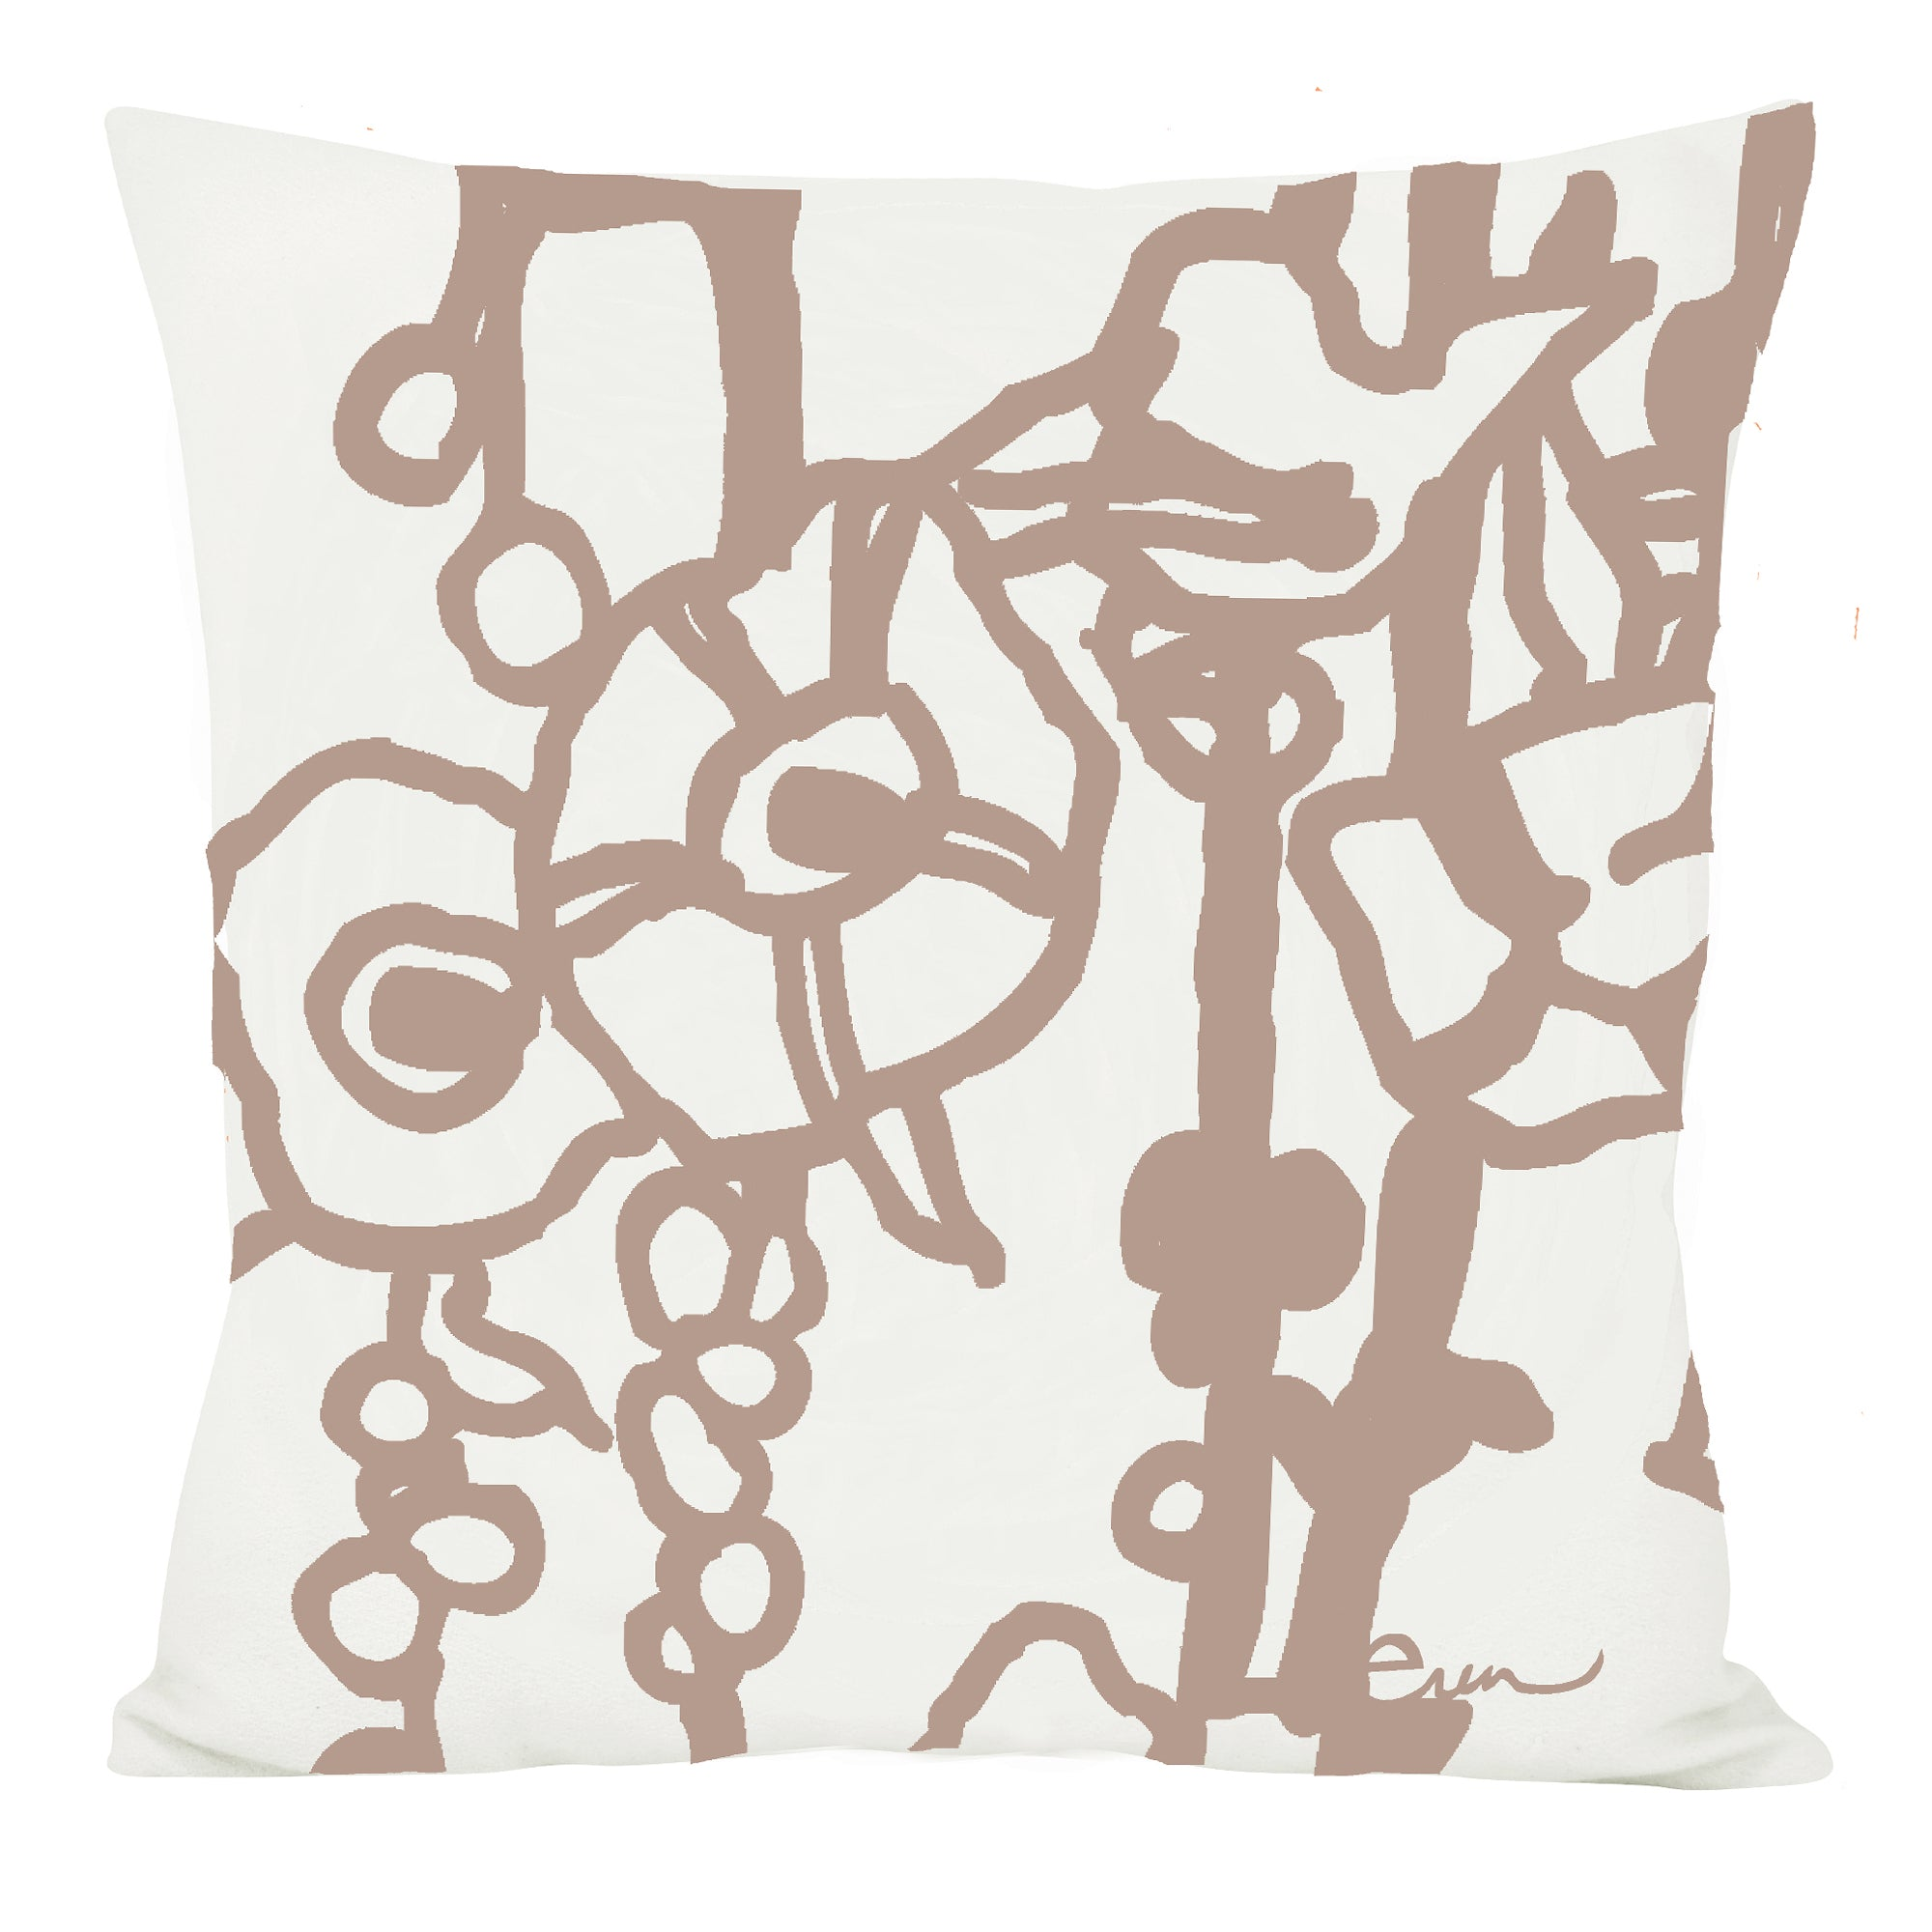 GEORGE LINEN PILLOW COVER IN TAUPE BROWN